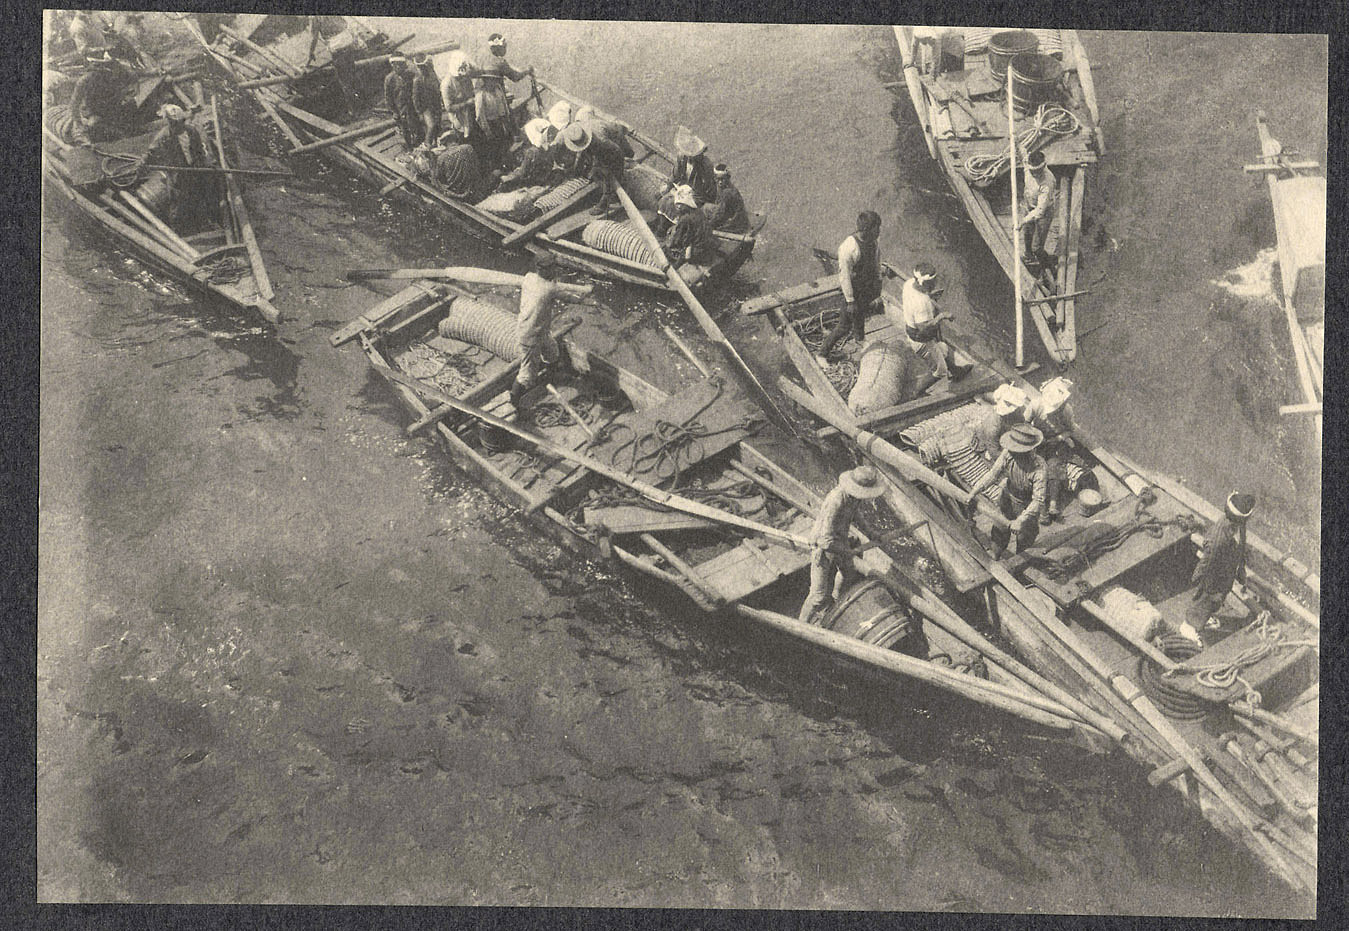 Small Japanese boats, seen from shipboard